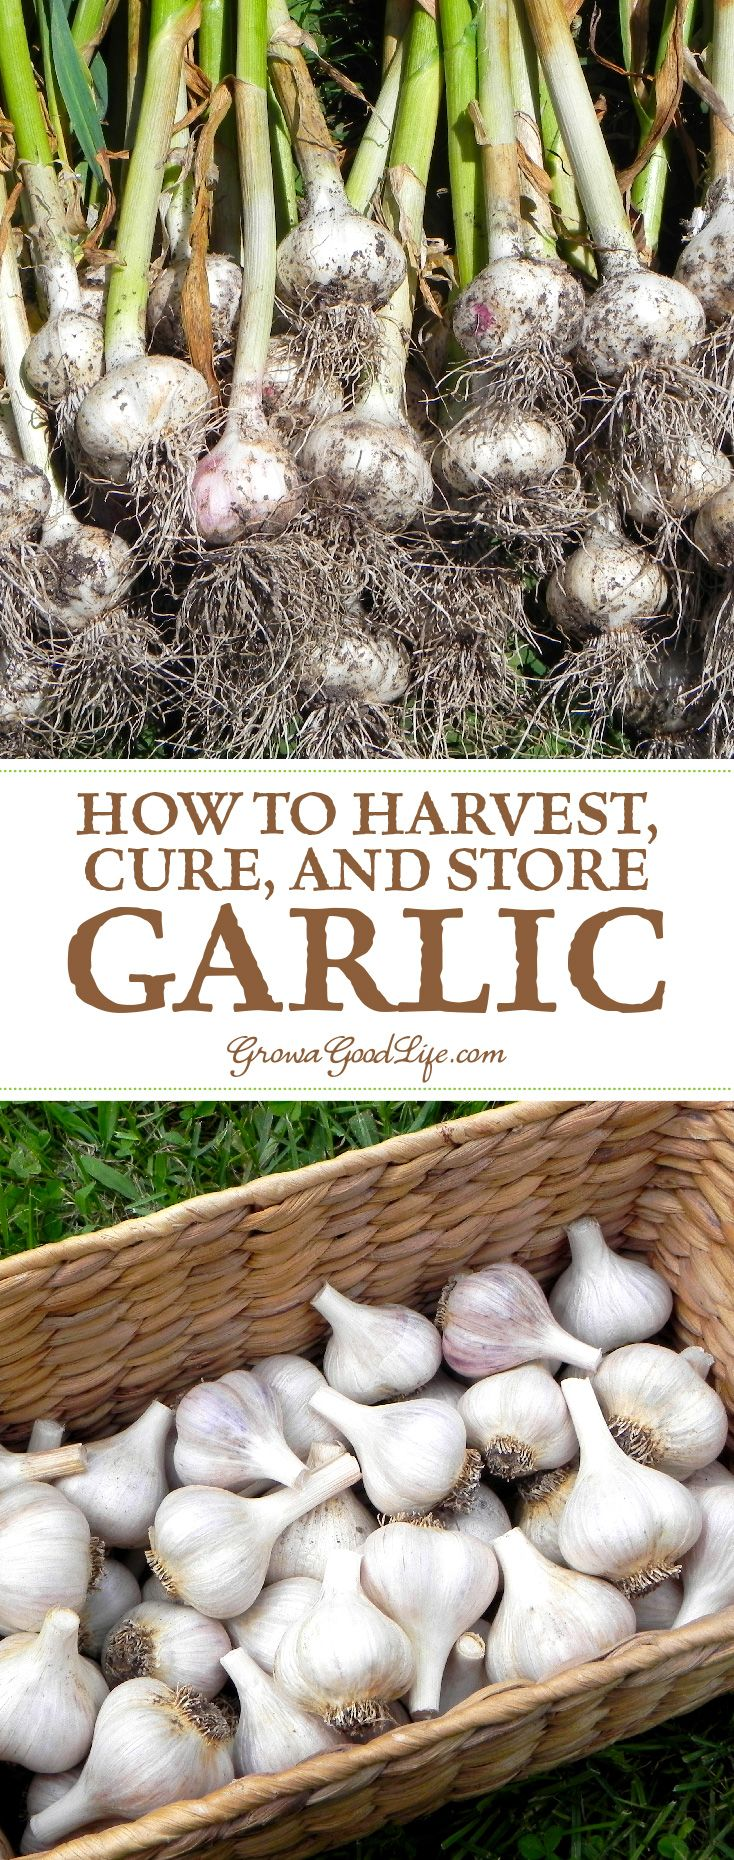 It is always a delicate balance between allowing the garlic to mature to their fullest and going too far. Lifting the garlic too early will result in undersized bulbs that won't store well. Harvesting too late and you risk the bulbs splitting through their skins leaving them unprotected and unable to withstand long term storage.